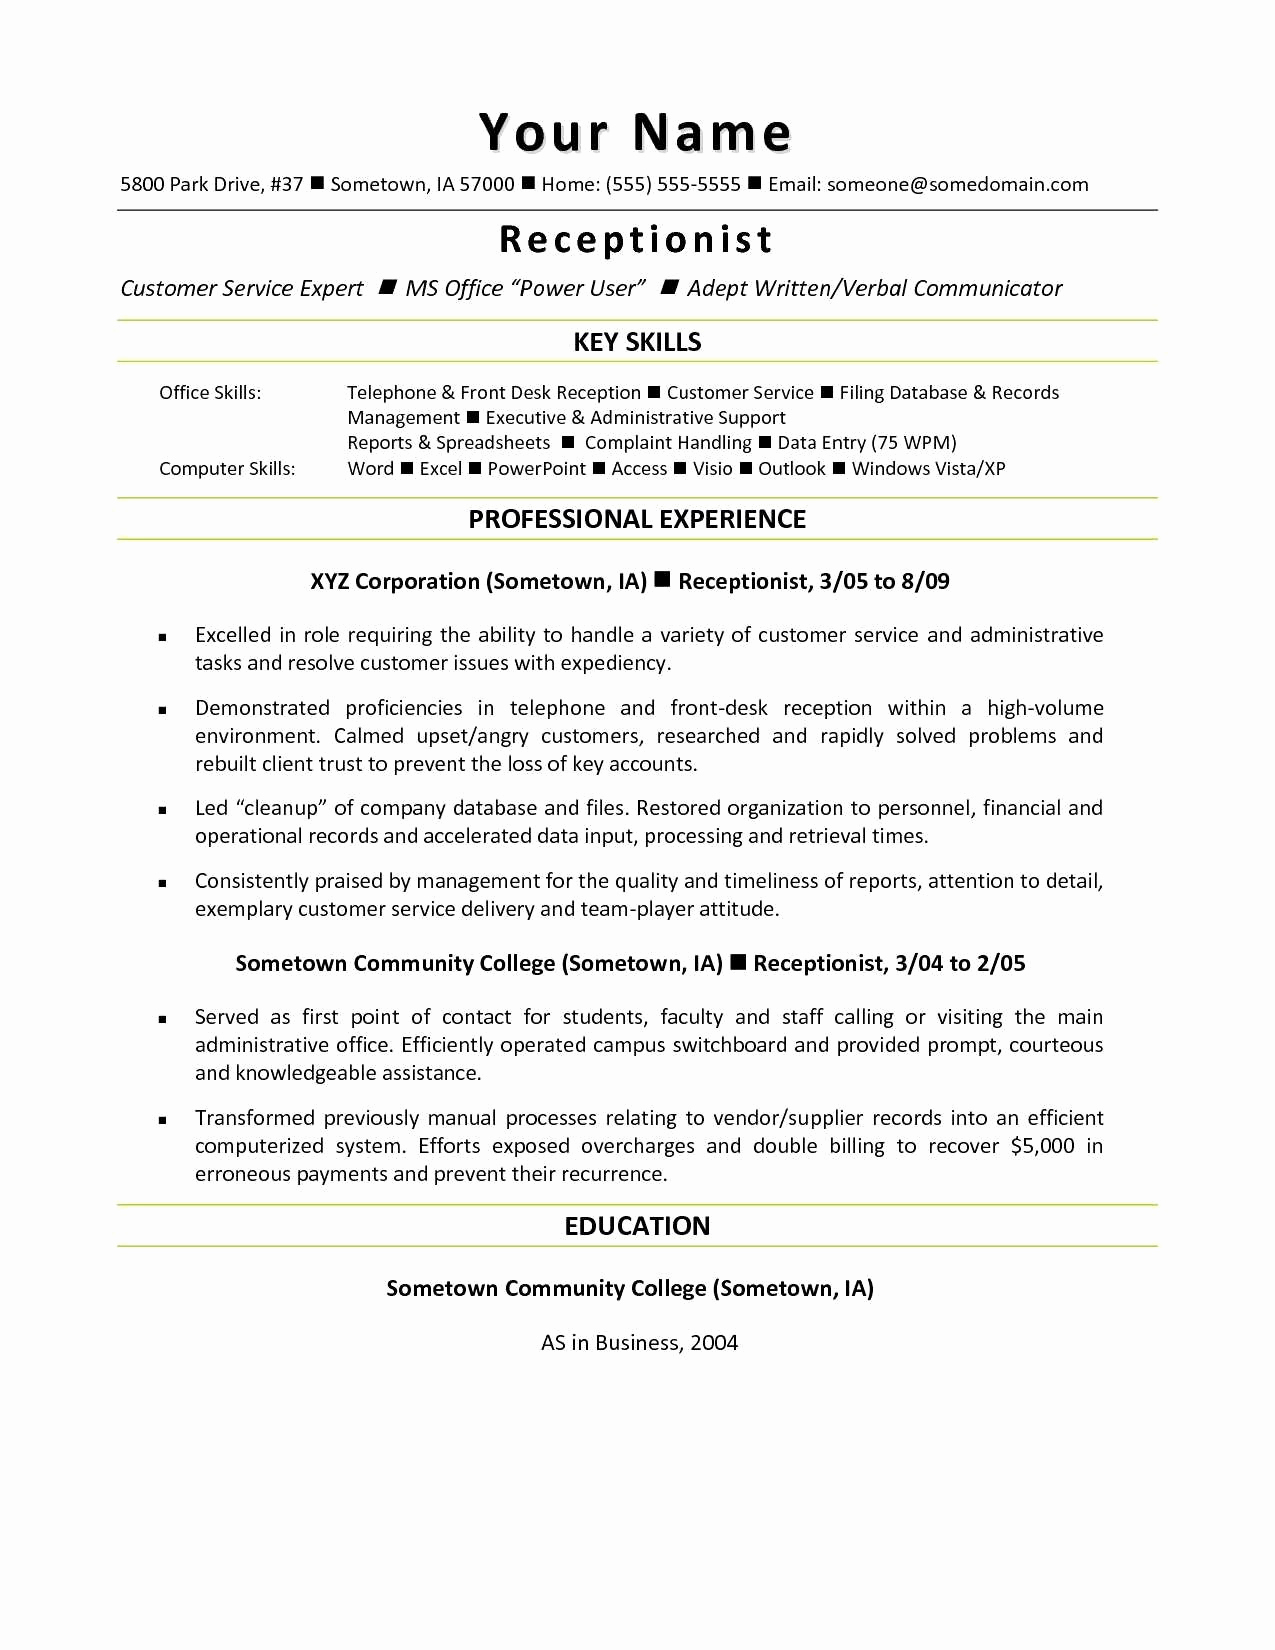 Portfolio Cover Letter Template - Cover Letter for Portfolio Luxury Resume Portfolio Examples Fresh